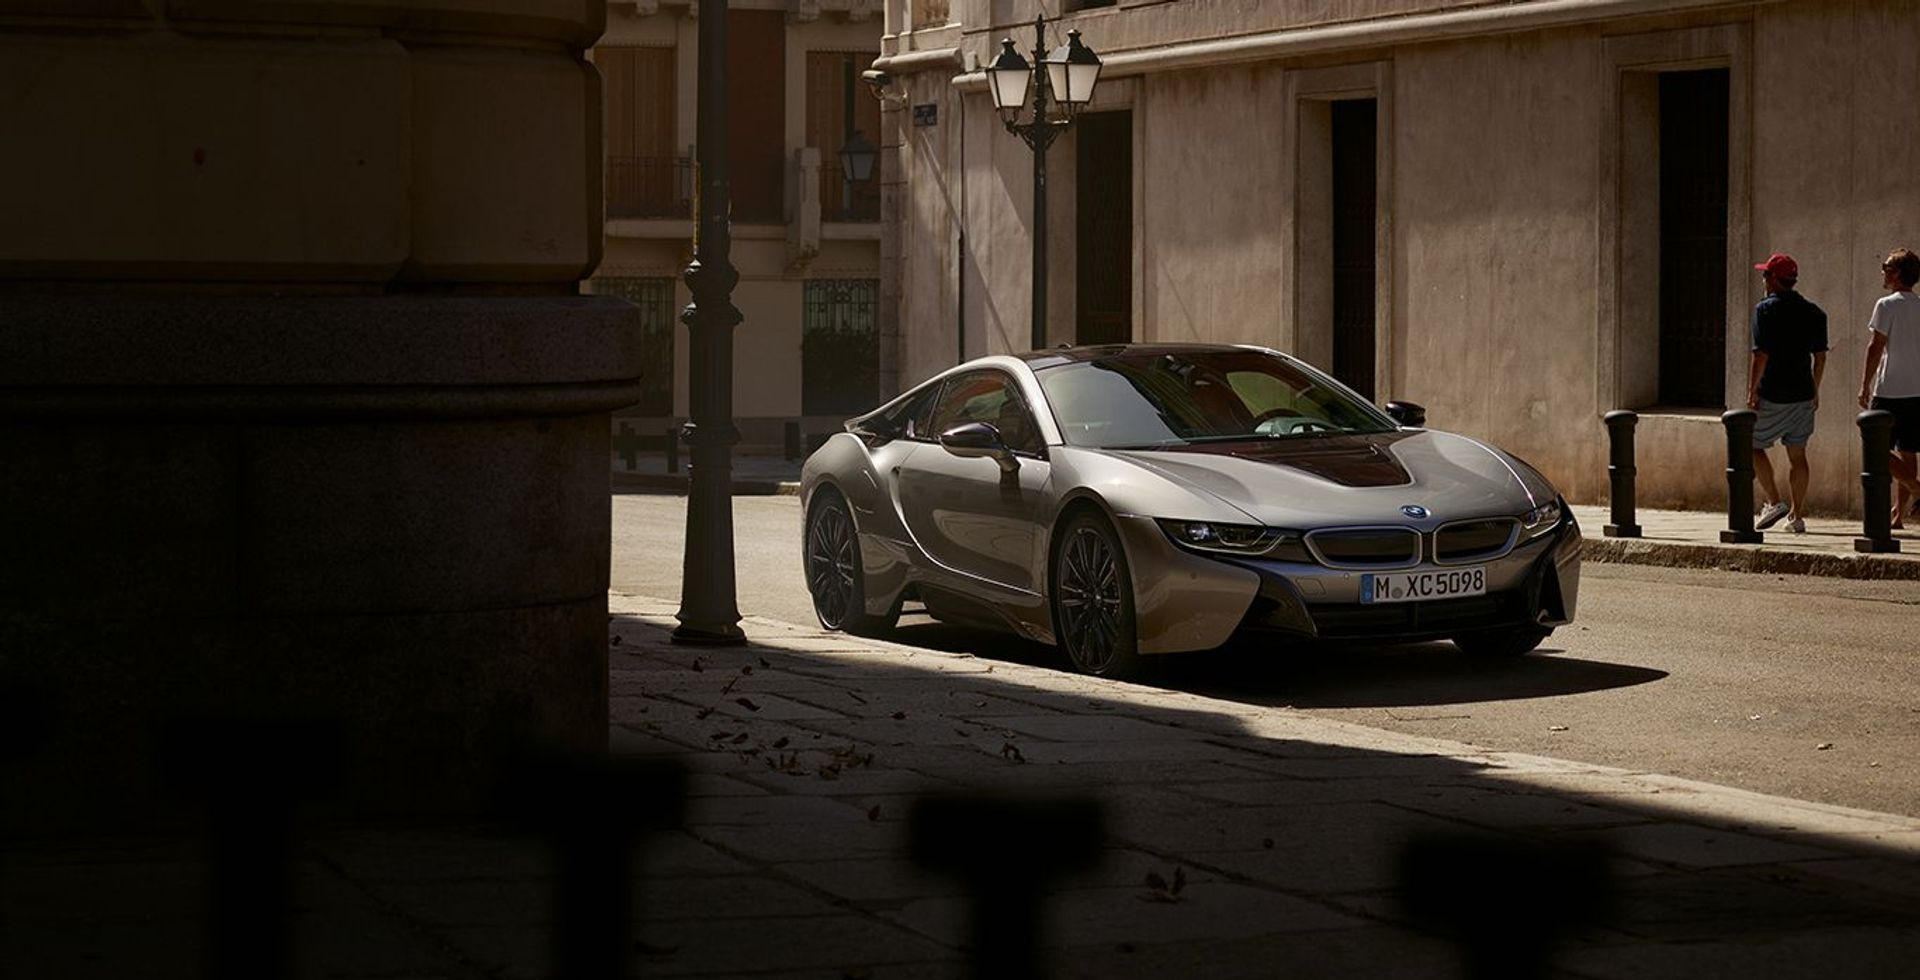 BMW i8 Protonic Dark Silver Edition image